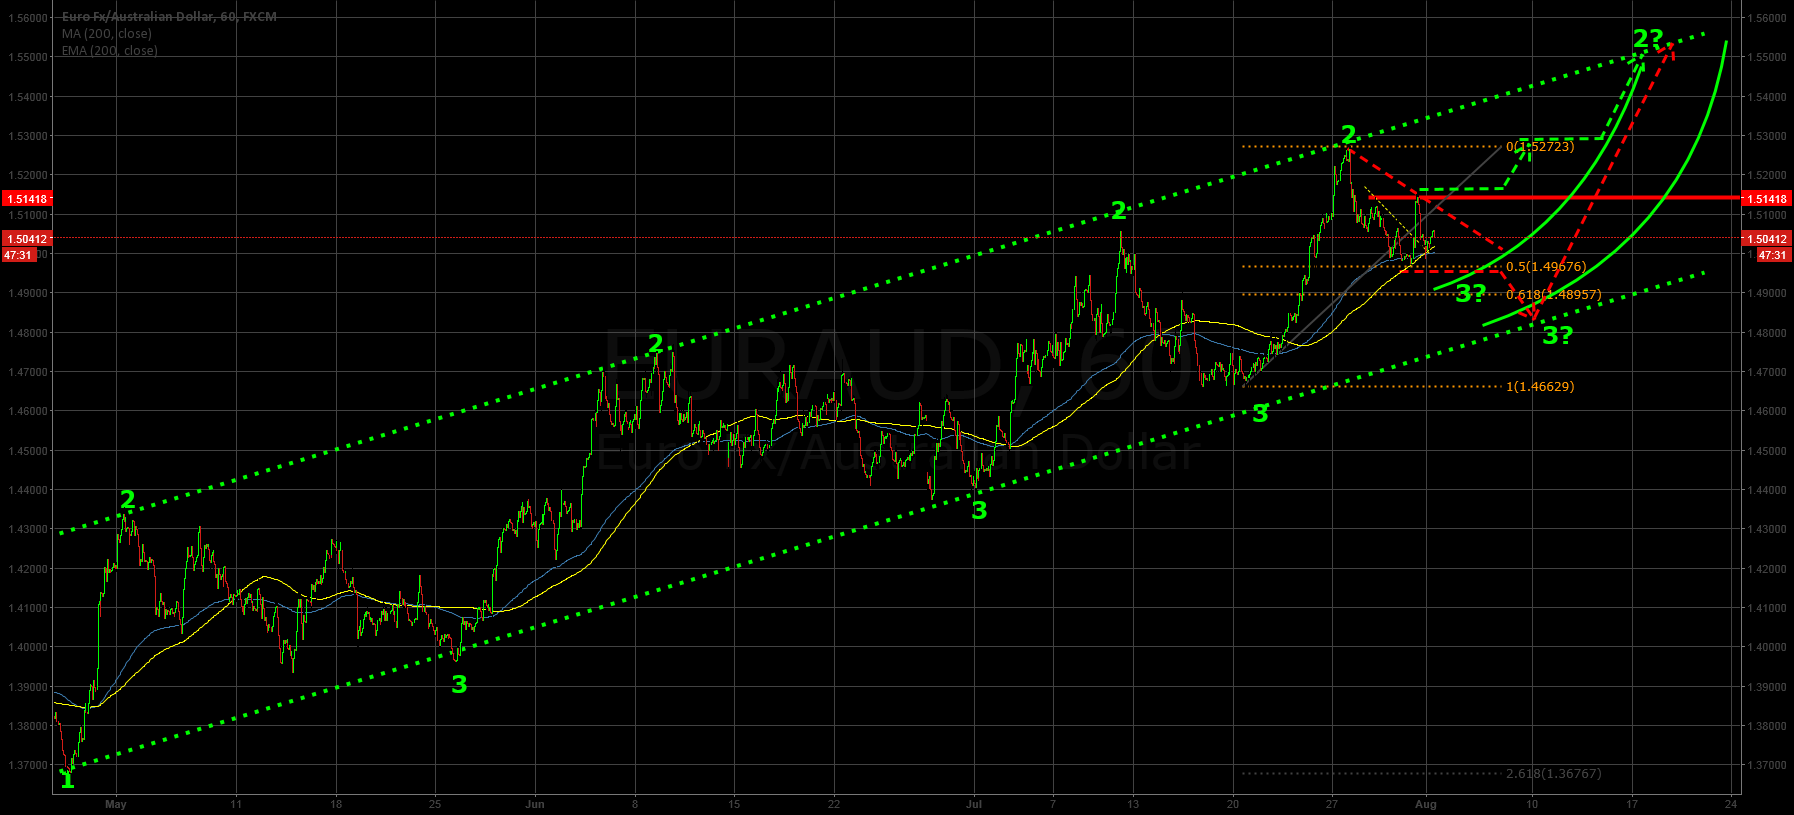 EURAUD new swing-trade possibility?